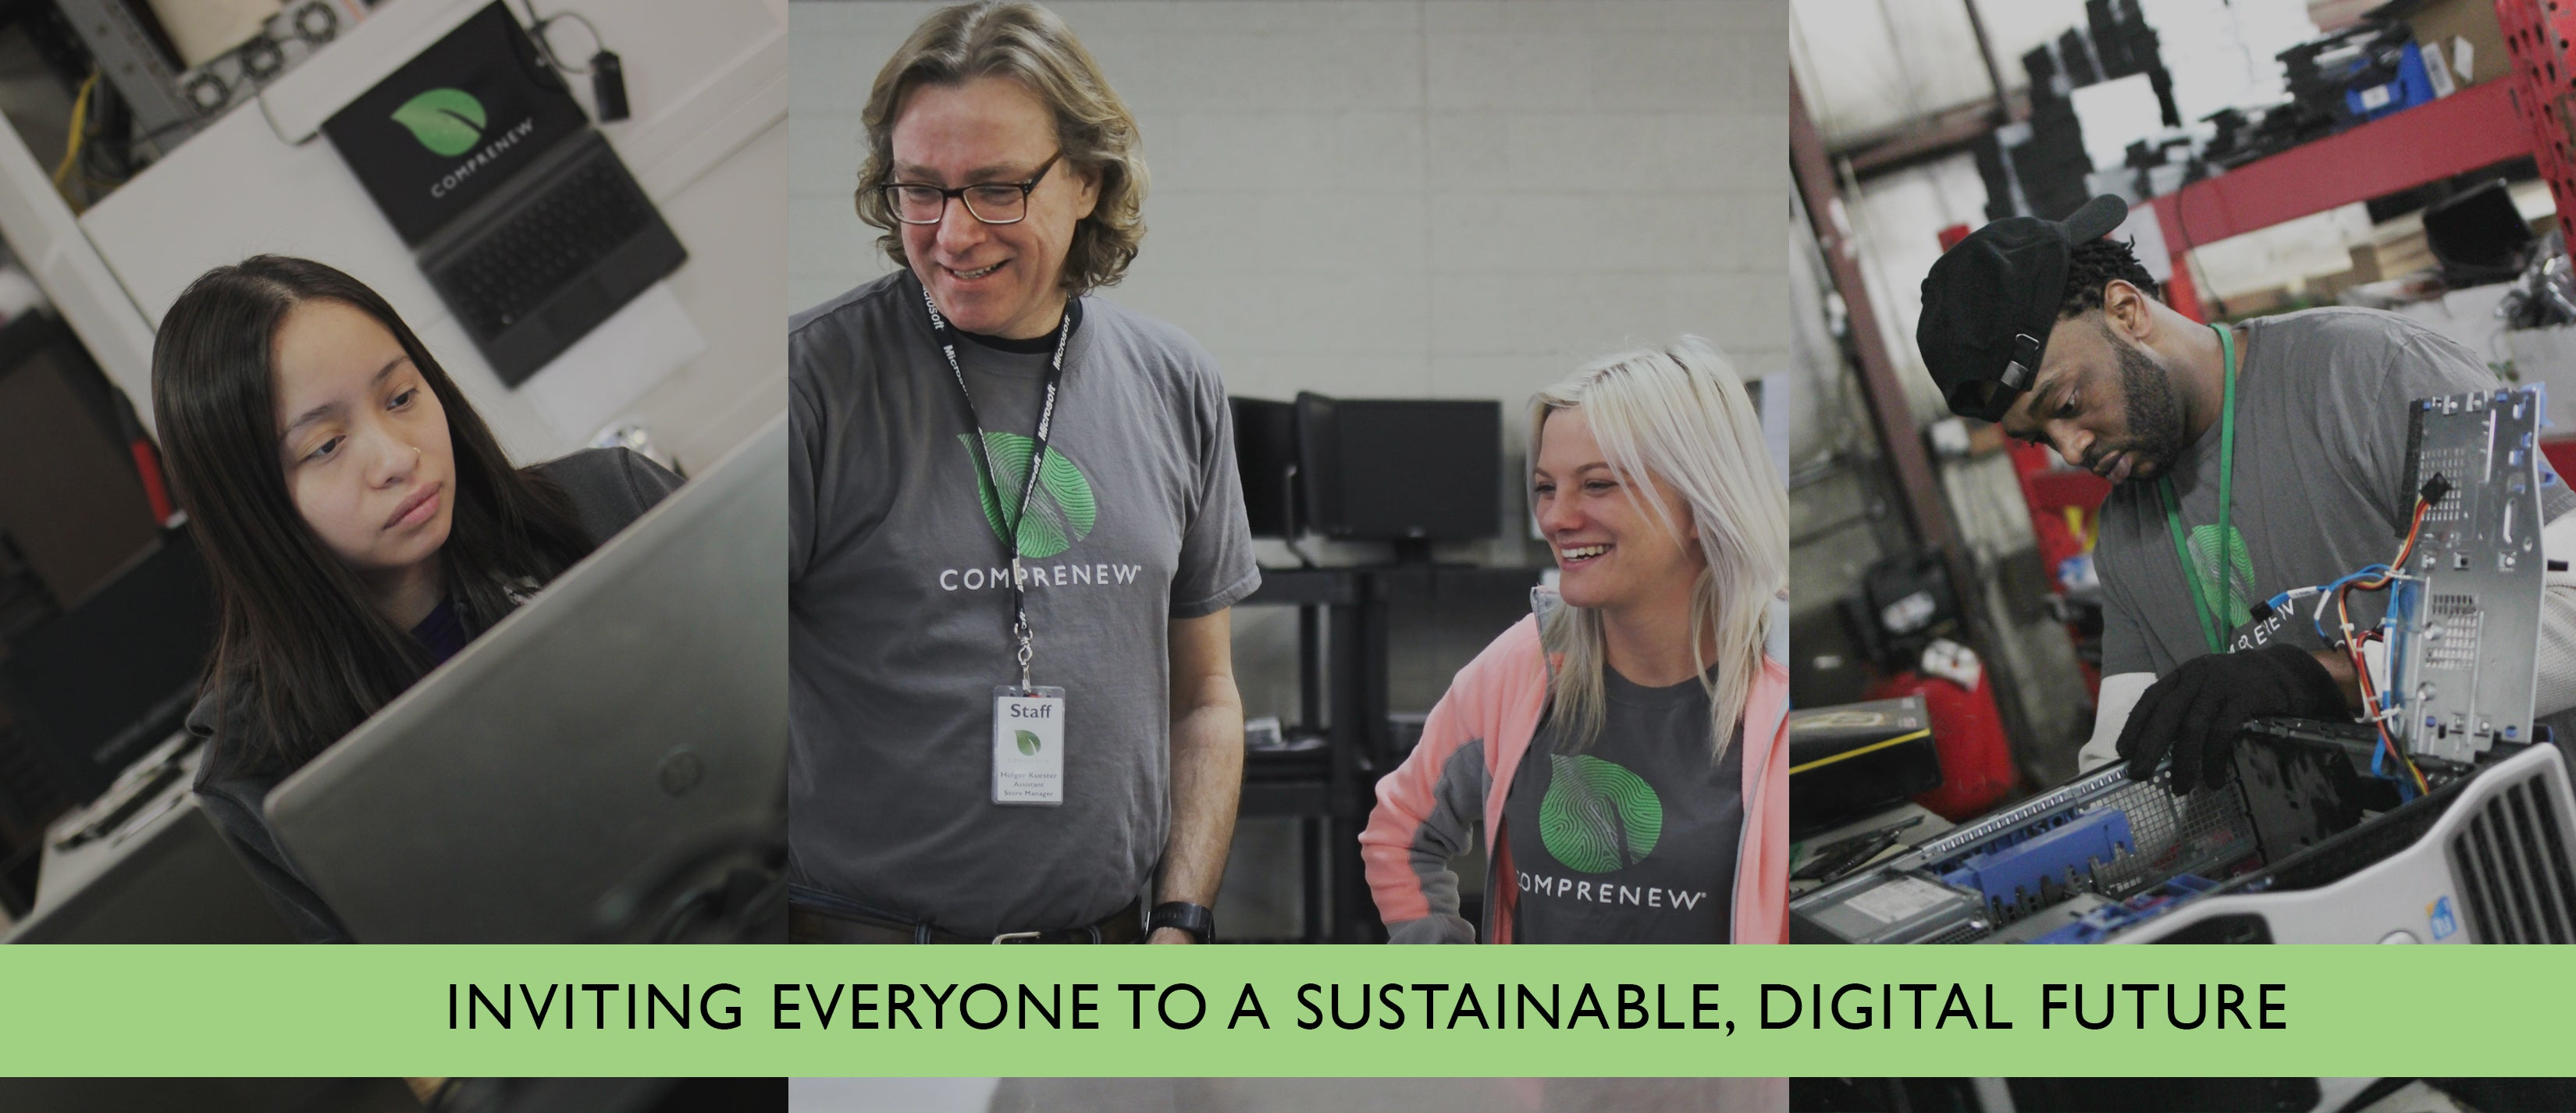 Inviting Everyone to a Sustainable Digital Future - Shop for a Cause